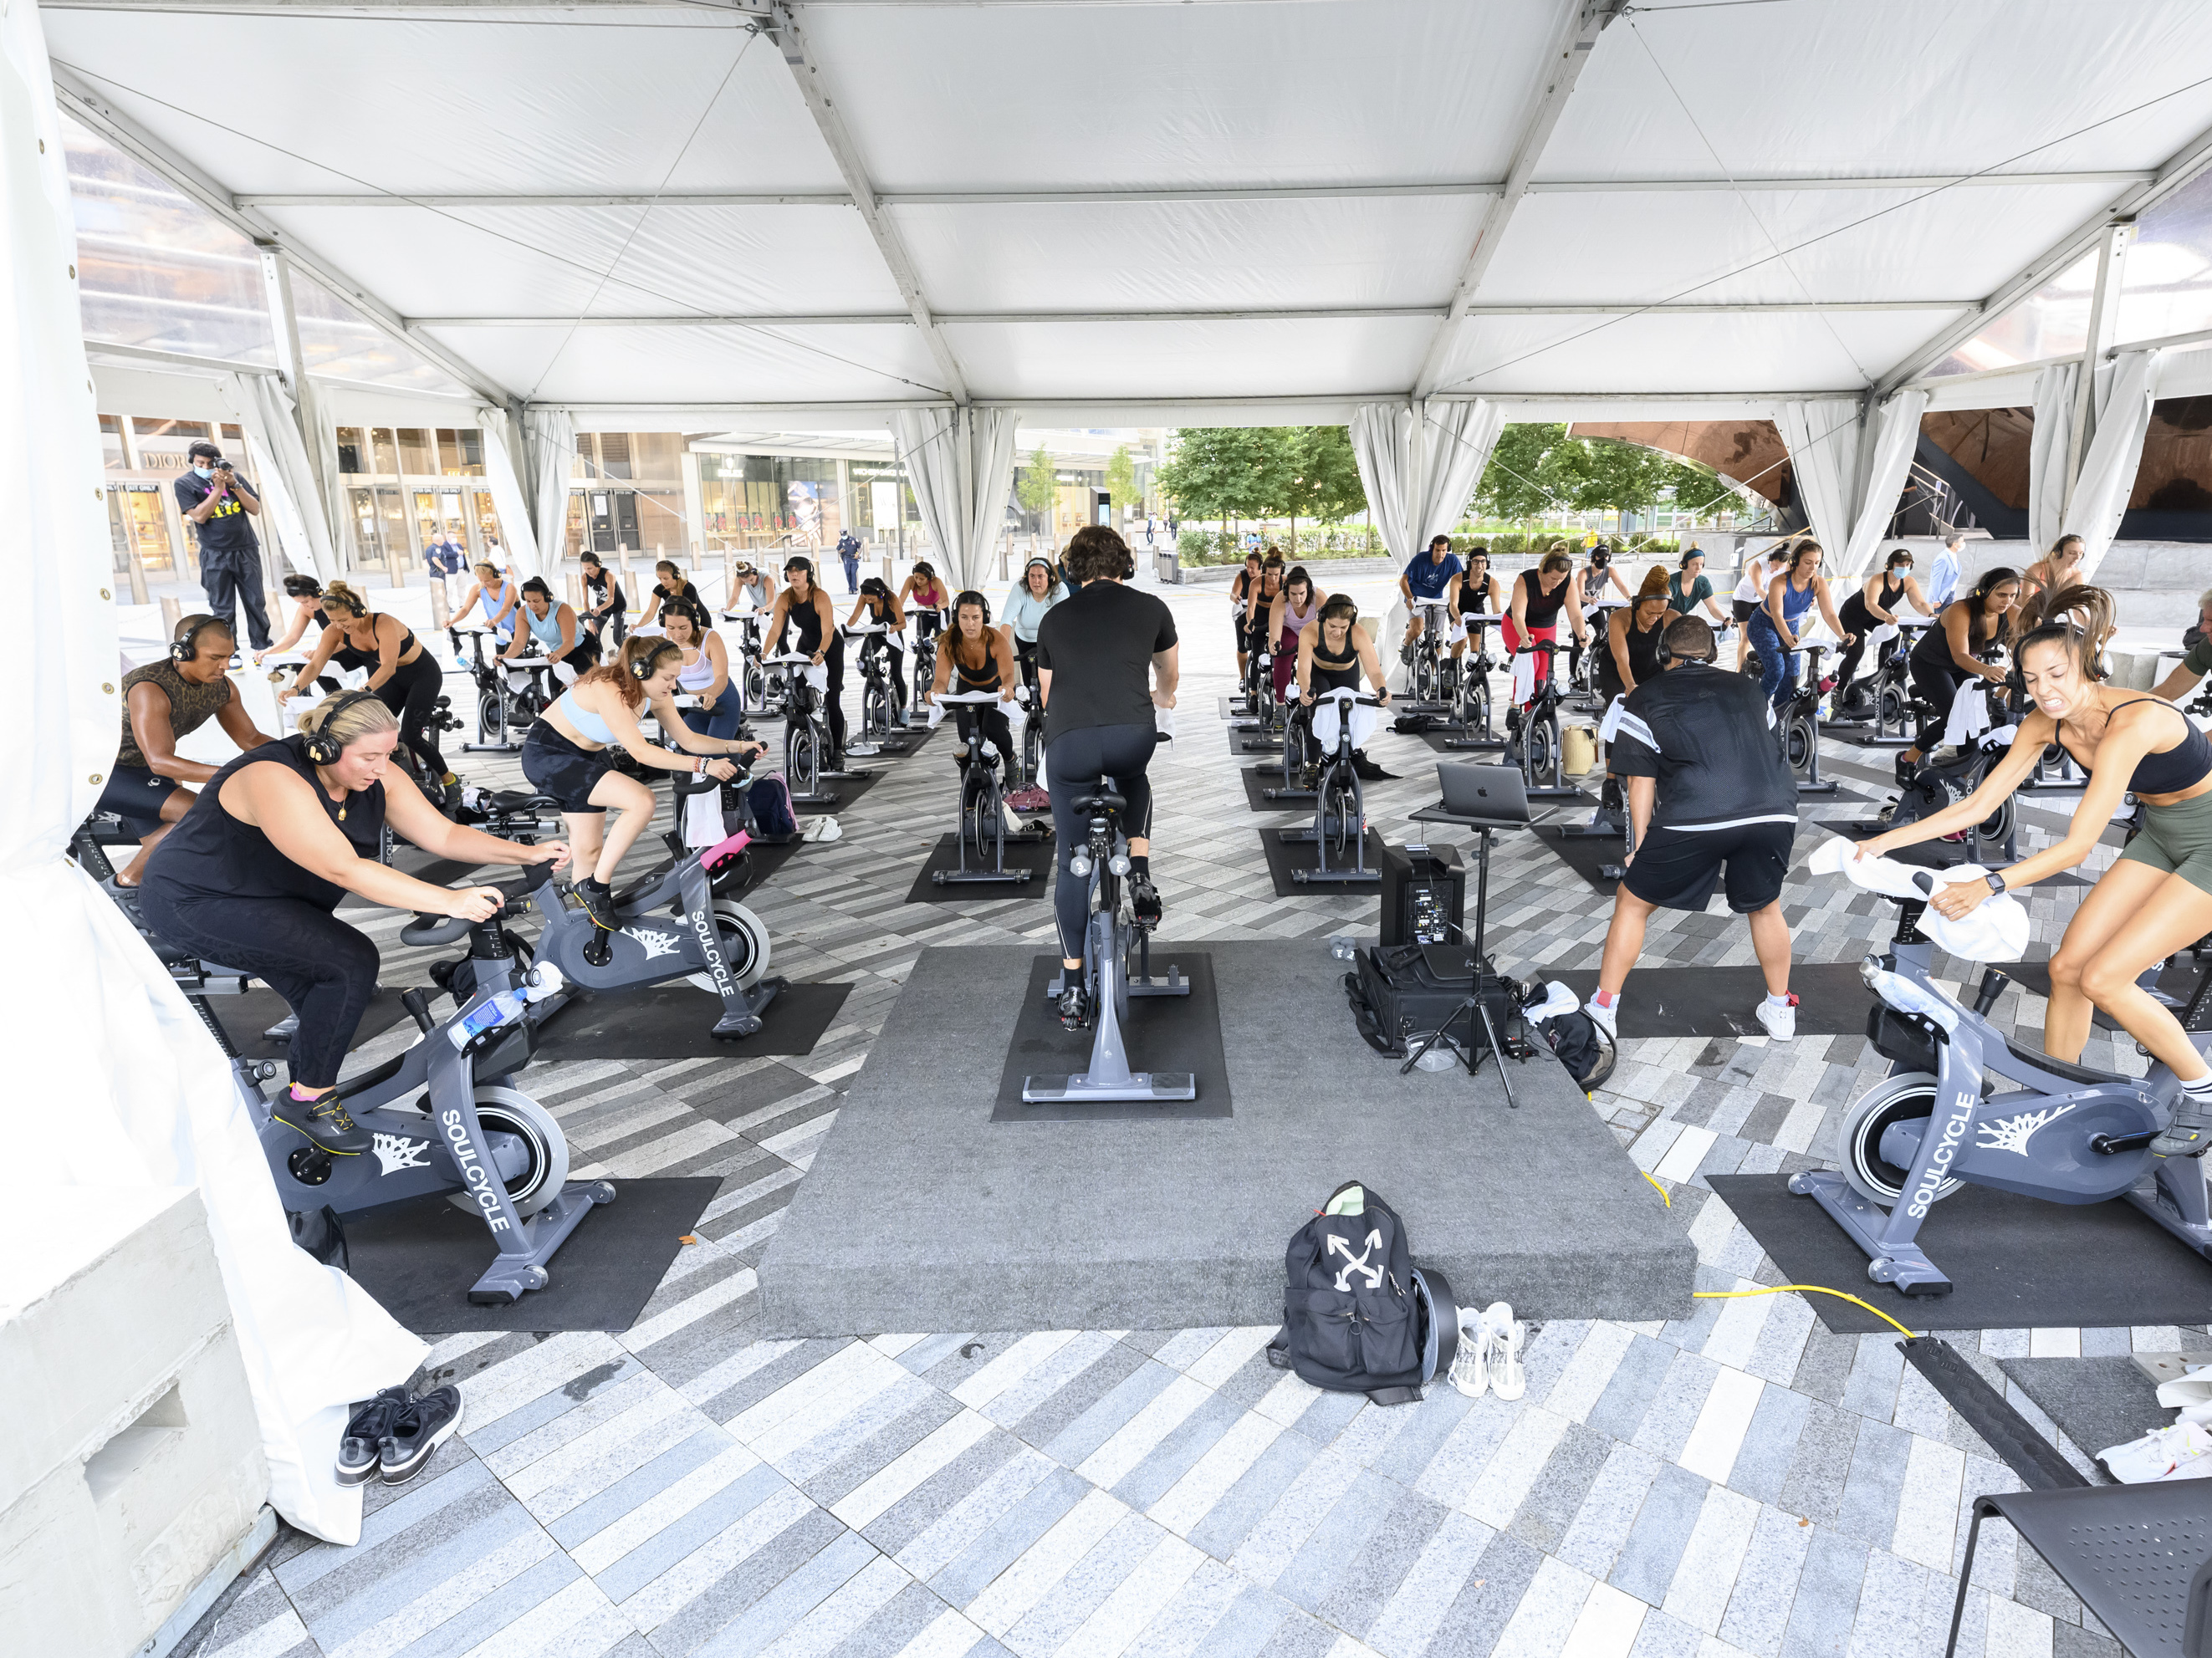 How Safe Is It To Work Out In A Gym Or Play Indoor Sports Goats And Soda Npr